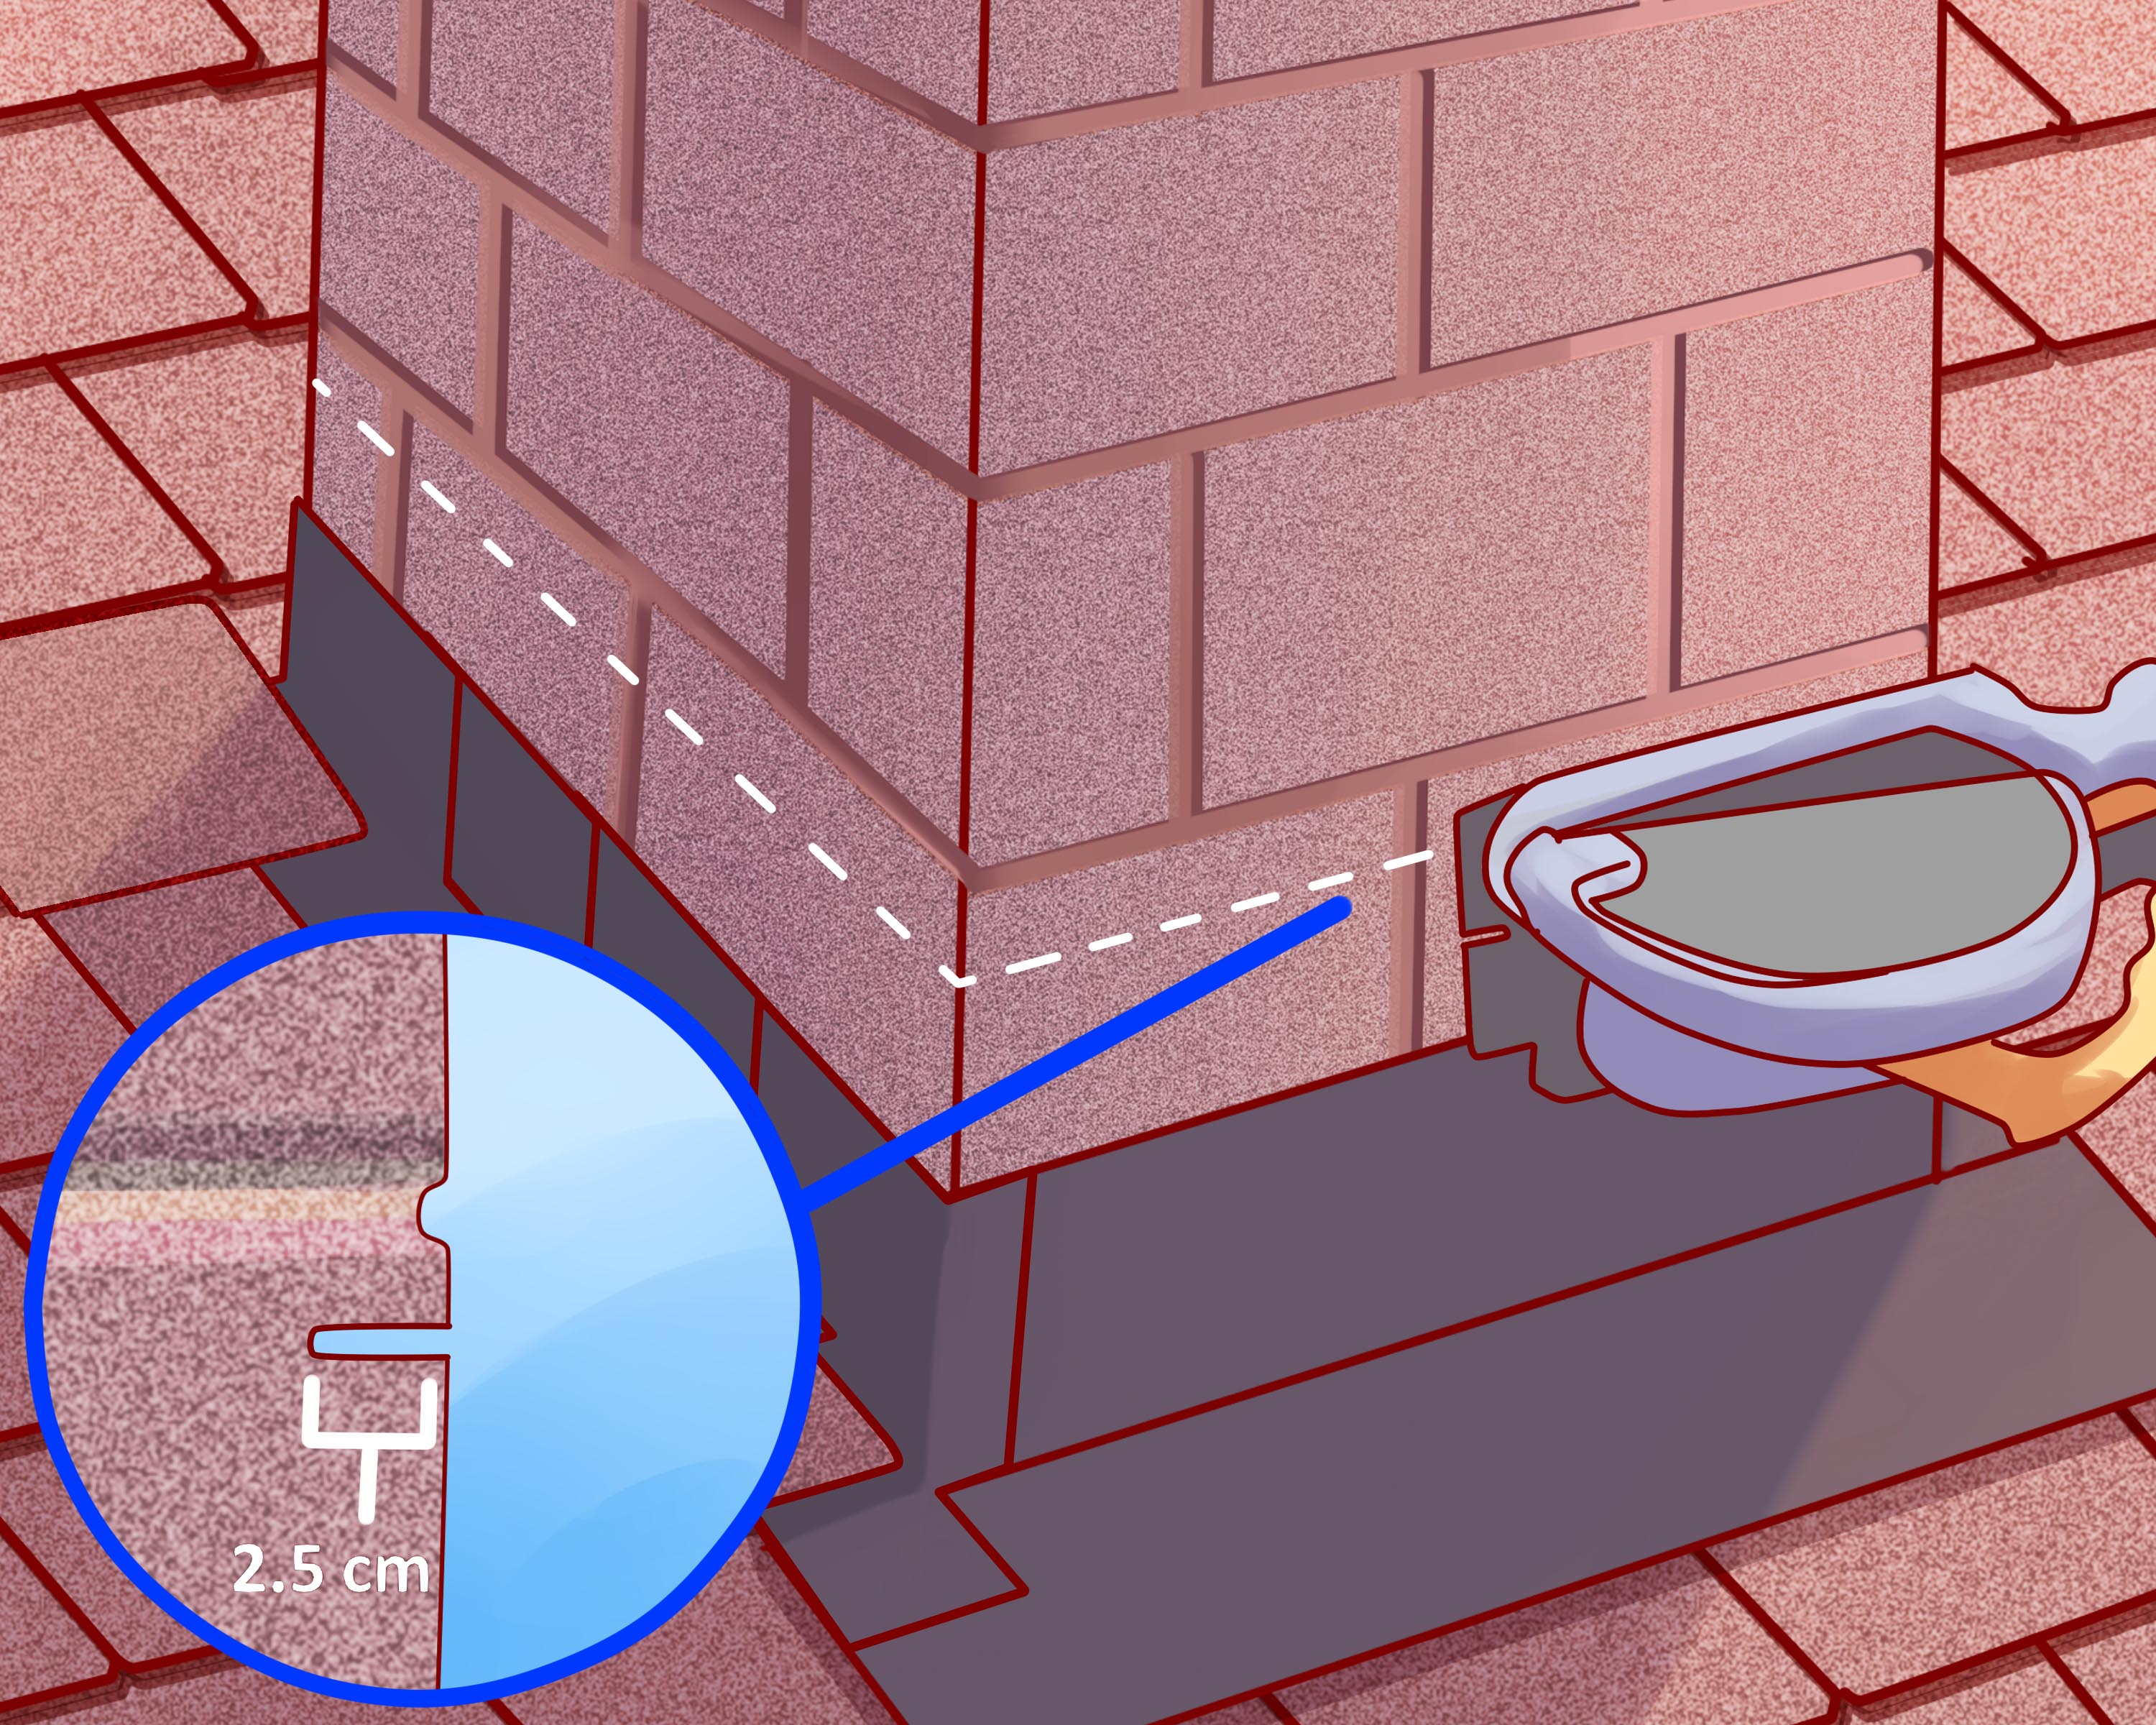 How To Flash A Chimney 6 Steps With Pictures Wikihow